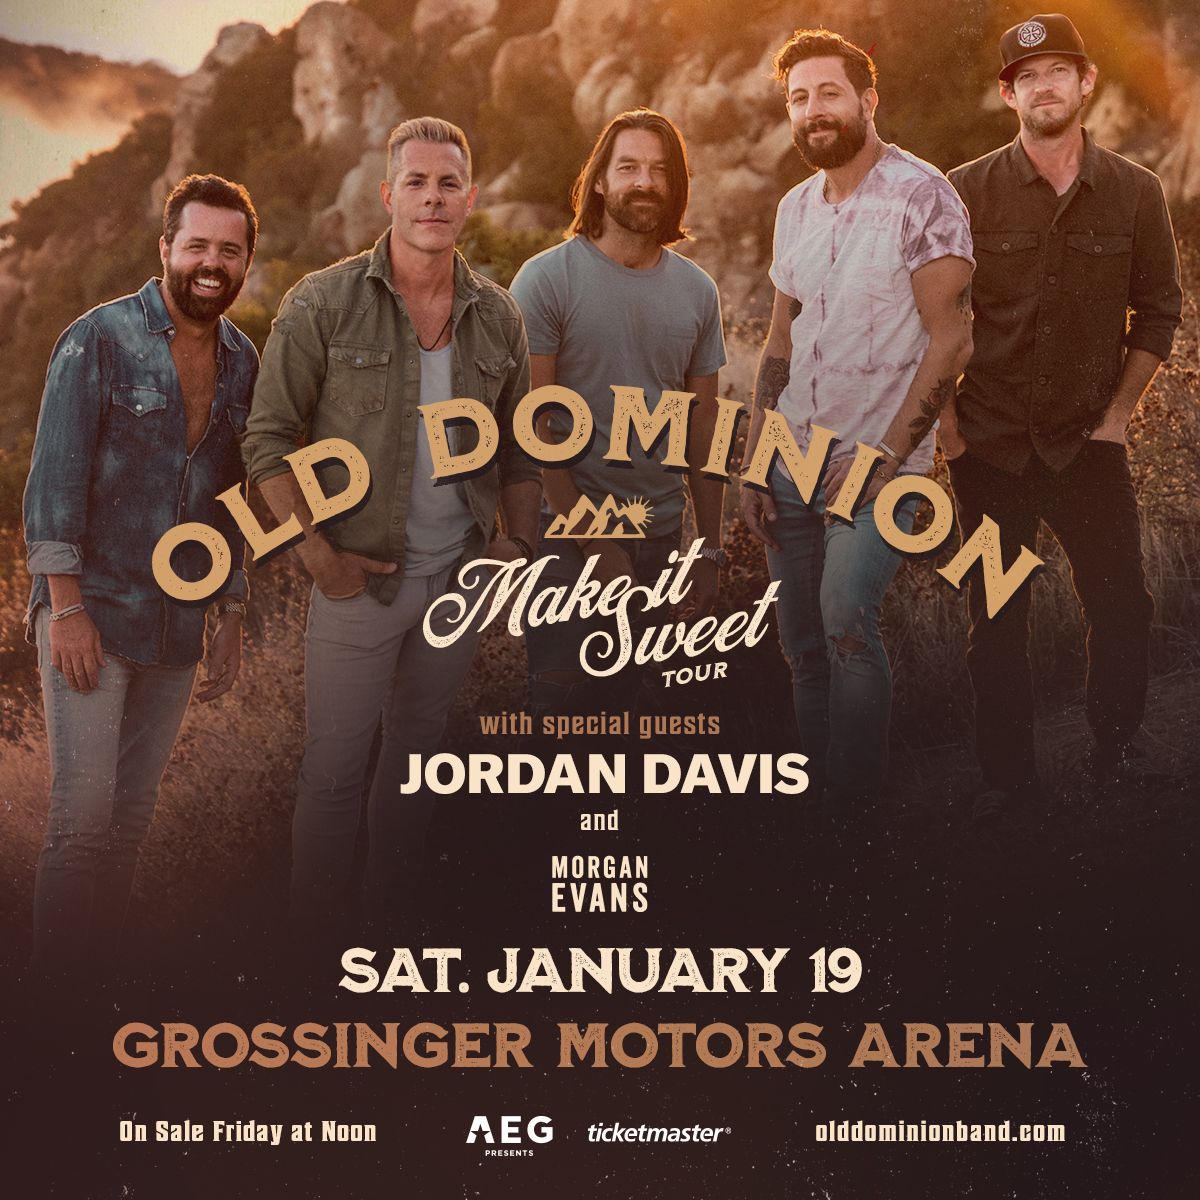 B104 Welcomes Old Dominion To Grossinger Motors Arena | B104